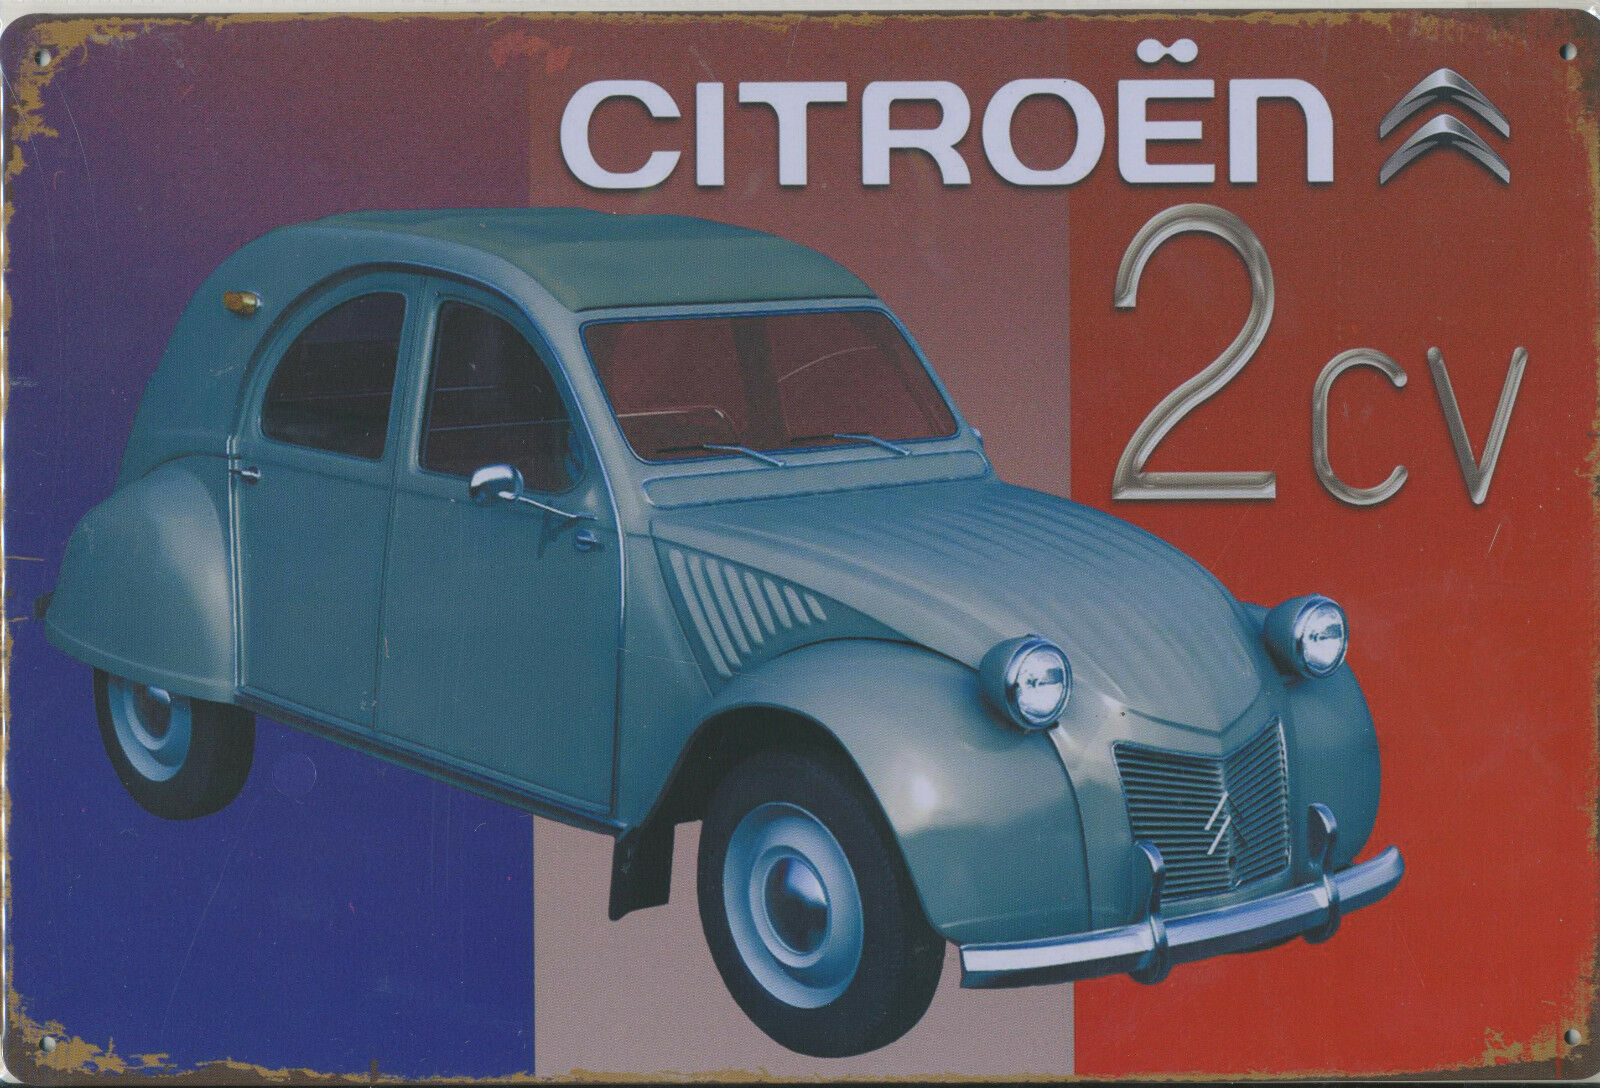 blechschild citroen 2cv ente auto werkstatt diner bar kneipe pub 20x30cm neu eur 11 95. Black Bedroom Furniture Sets. Home Design Ideas